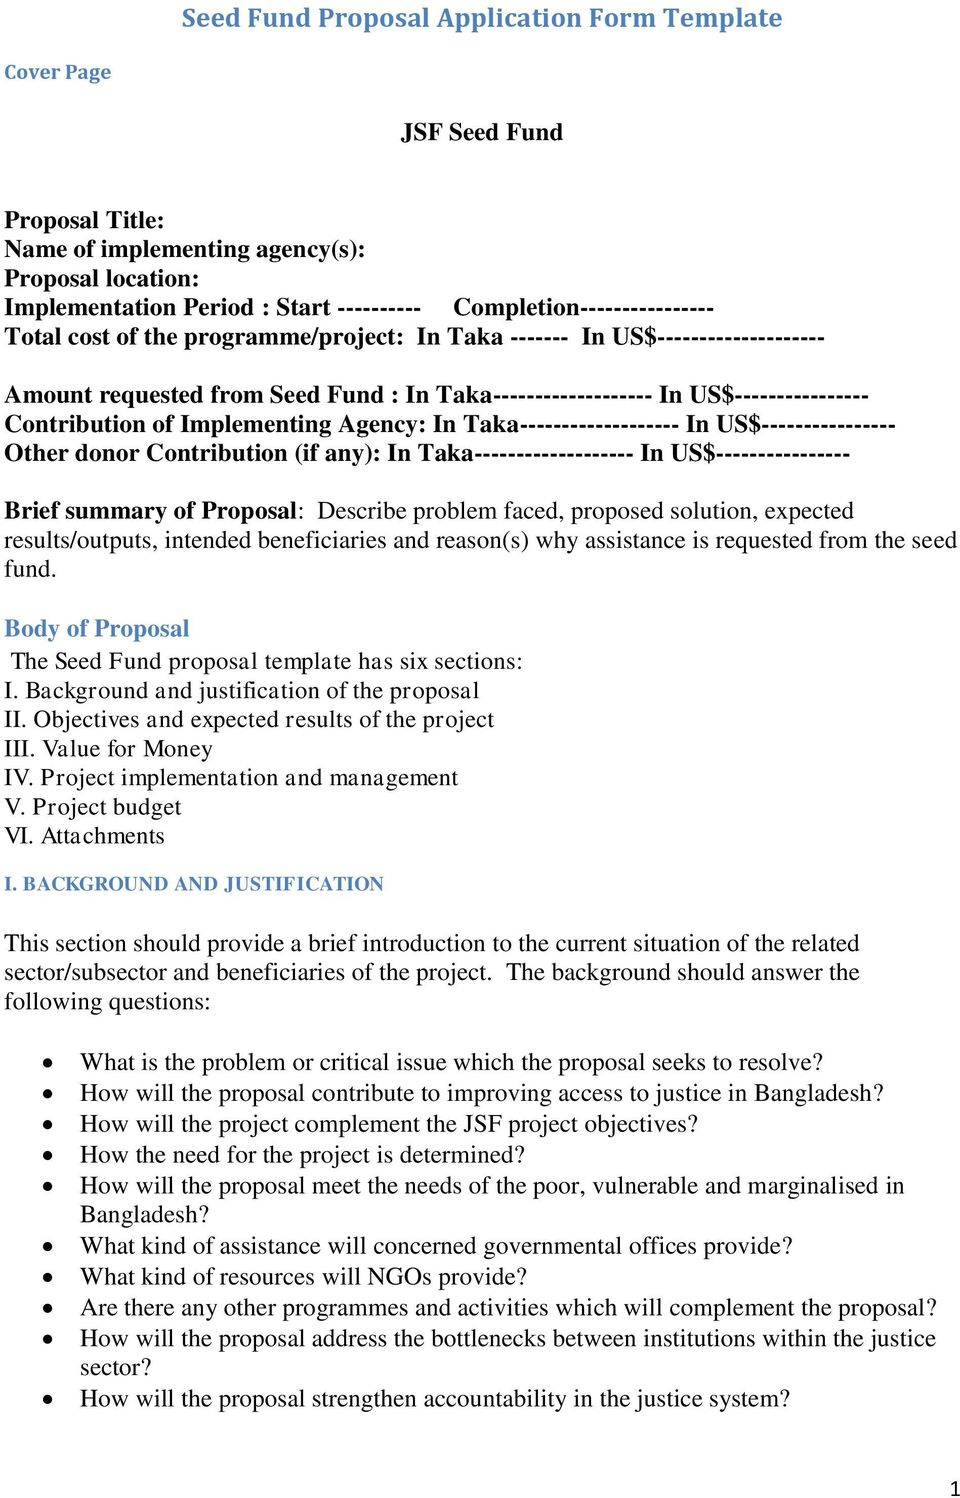 seed fund proposal application form template pdf